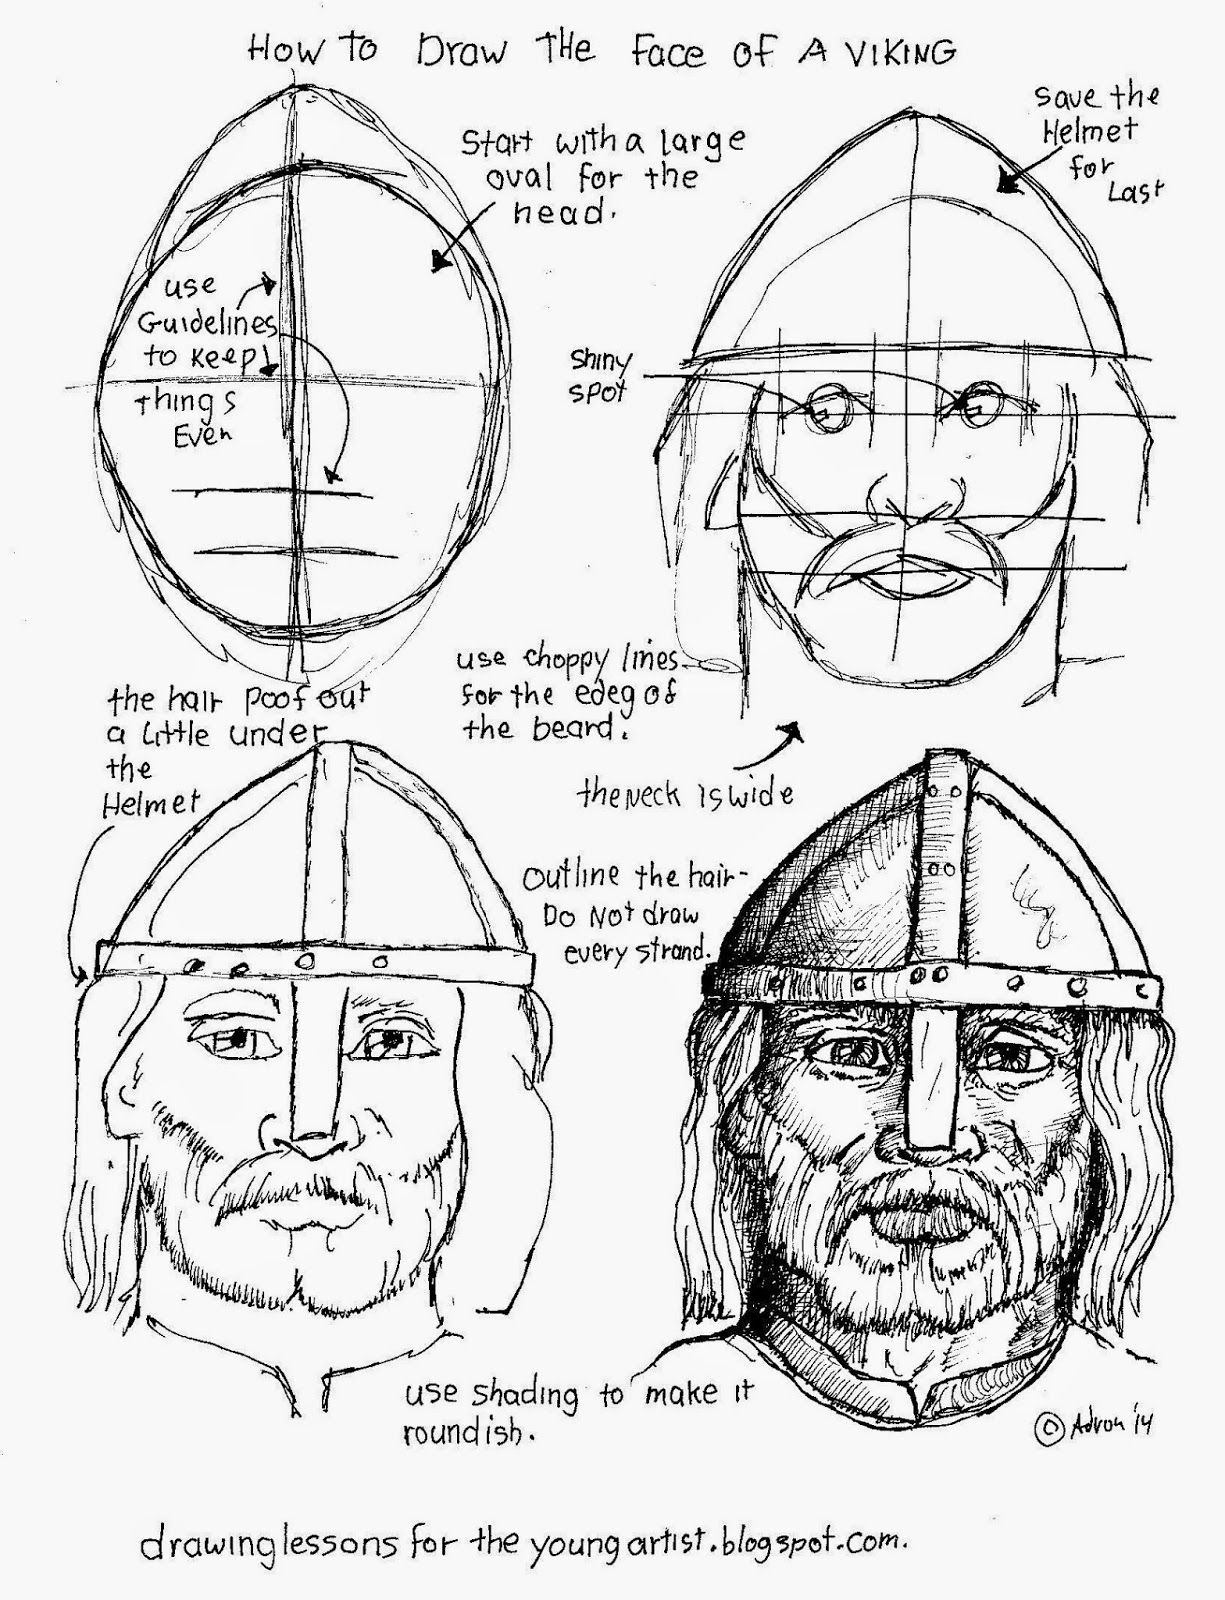 how to draw worksheets for the young artist how to draw a face of a viking mystery of history. Black Bedroom Furniture Sets. Home Design Ideas